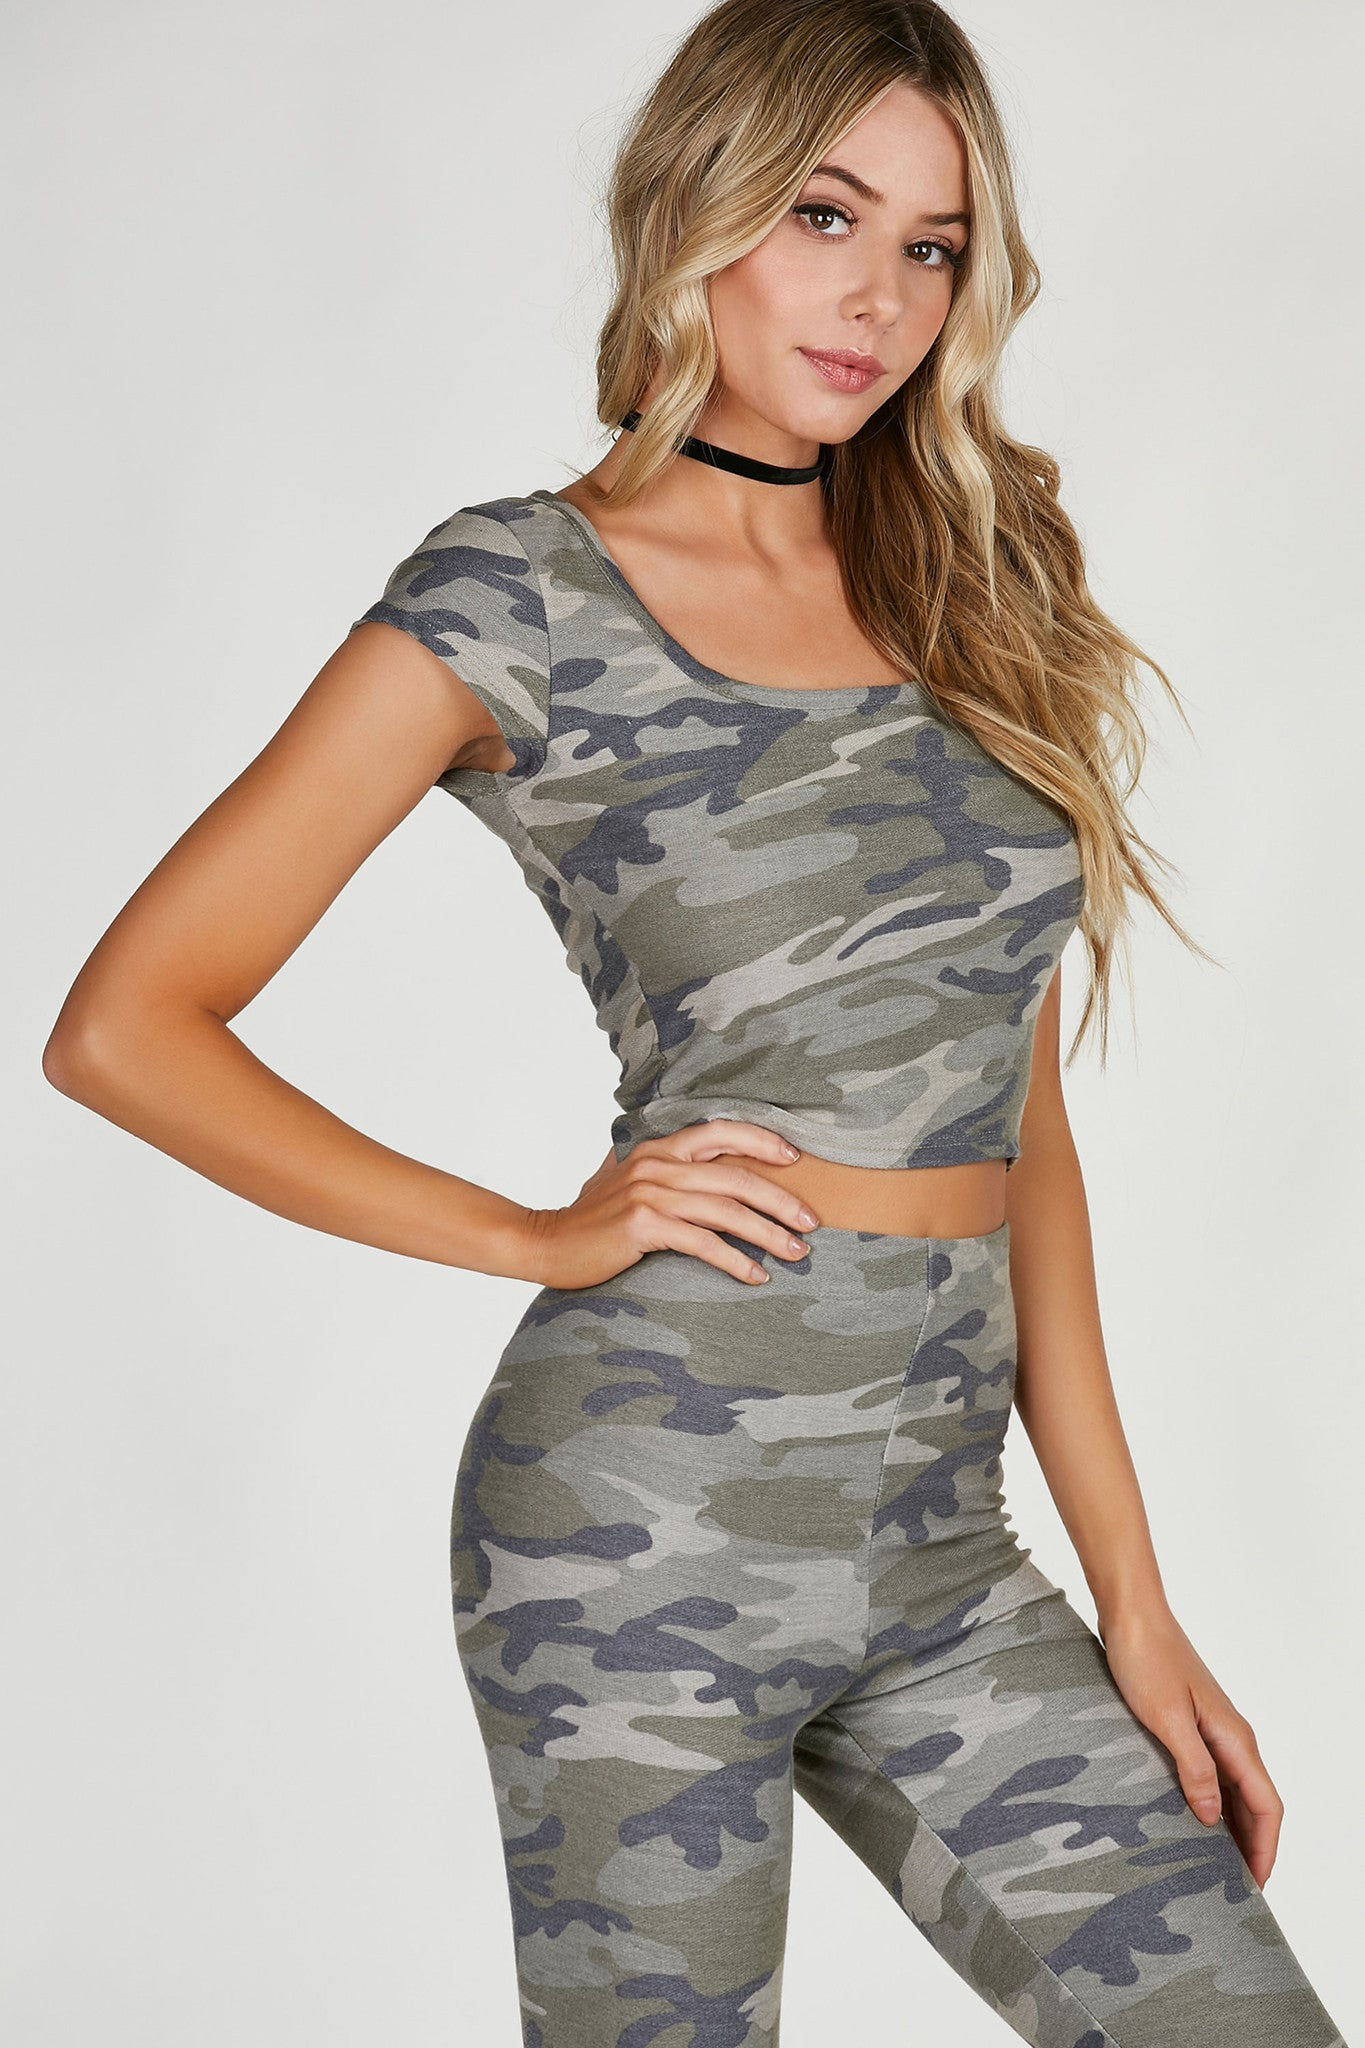 Scoop neck crop top with cap sleeves. Camo print throughout with straight hem finish. Comes in a set with matching bottoms sold separately.